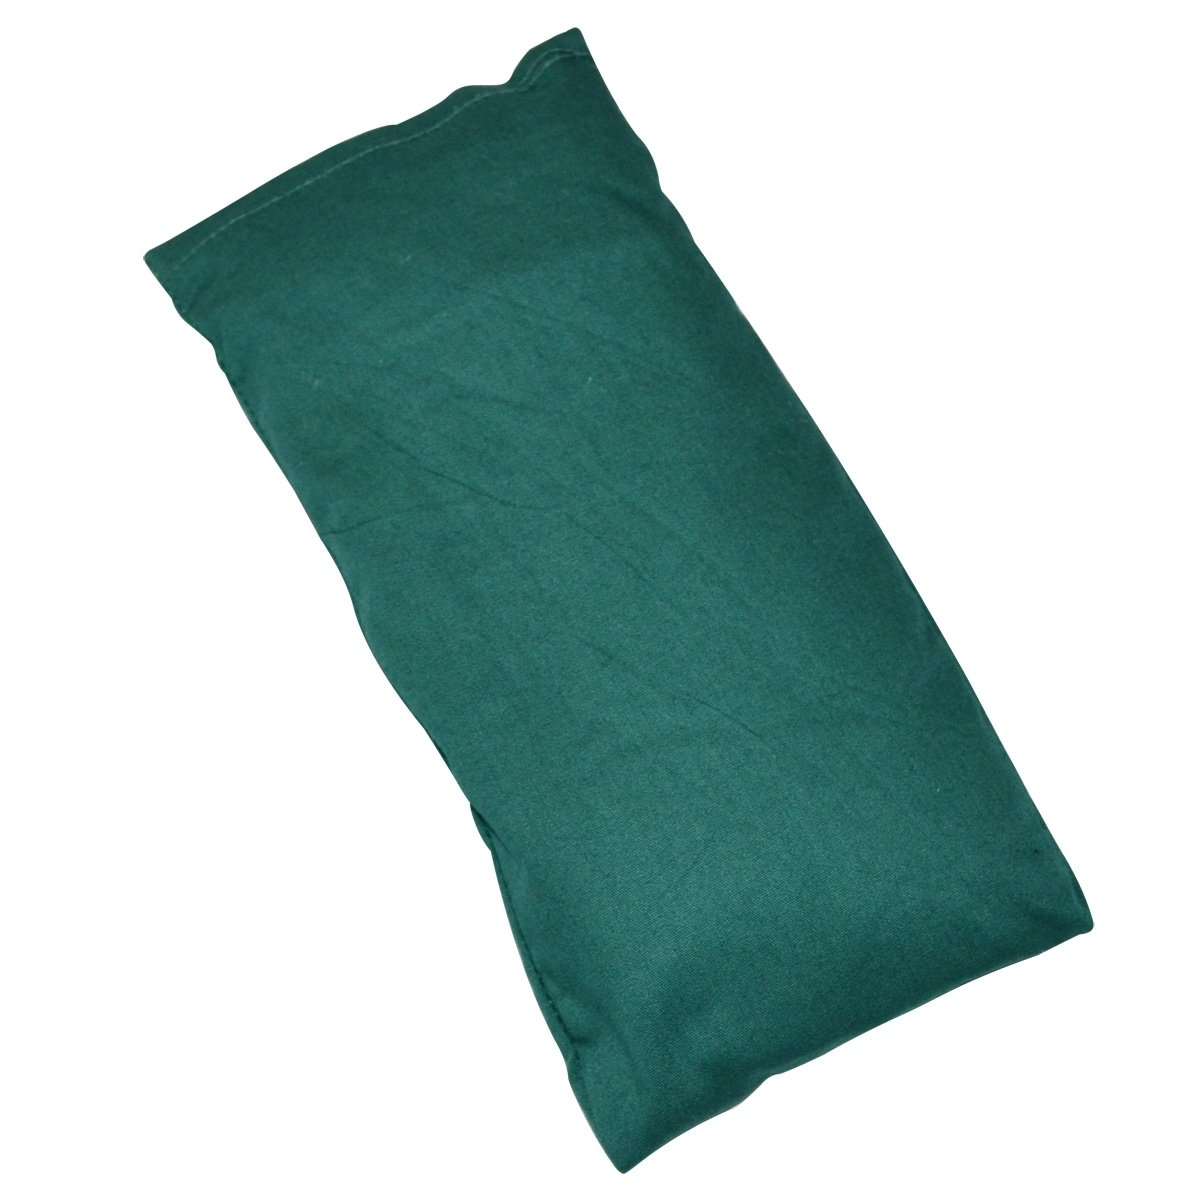 Yoga Direct Cotton Lavender-Scented Eye Pillow, Green by Yoga Direct